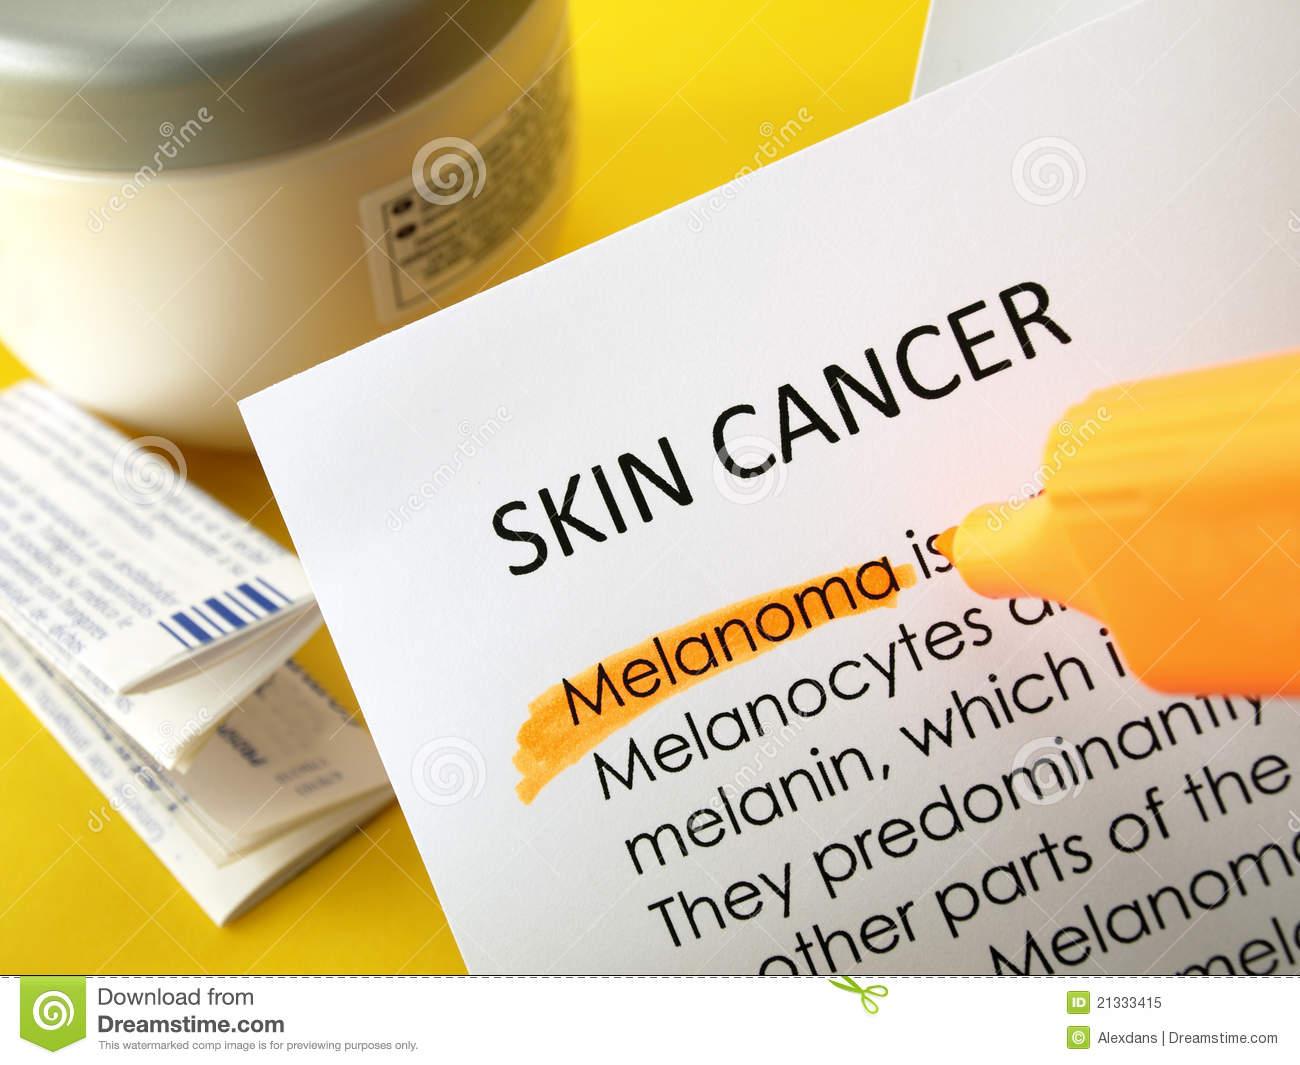 Skin Cancer Treatments Royalty Free Stock Photo   Image  21333415